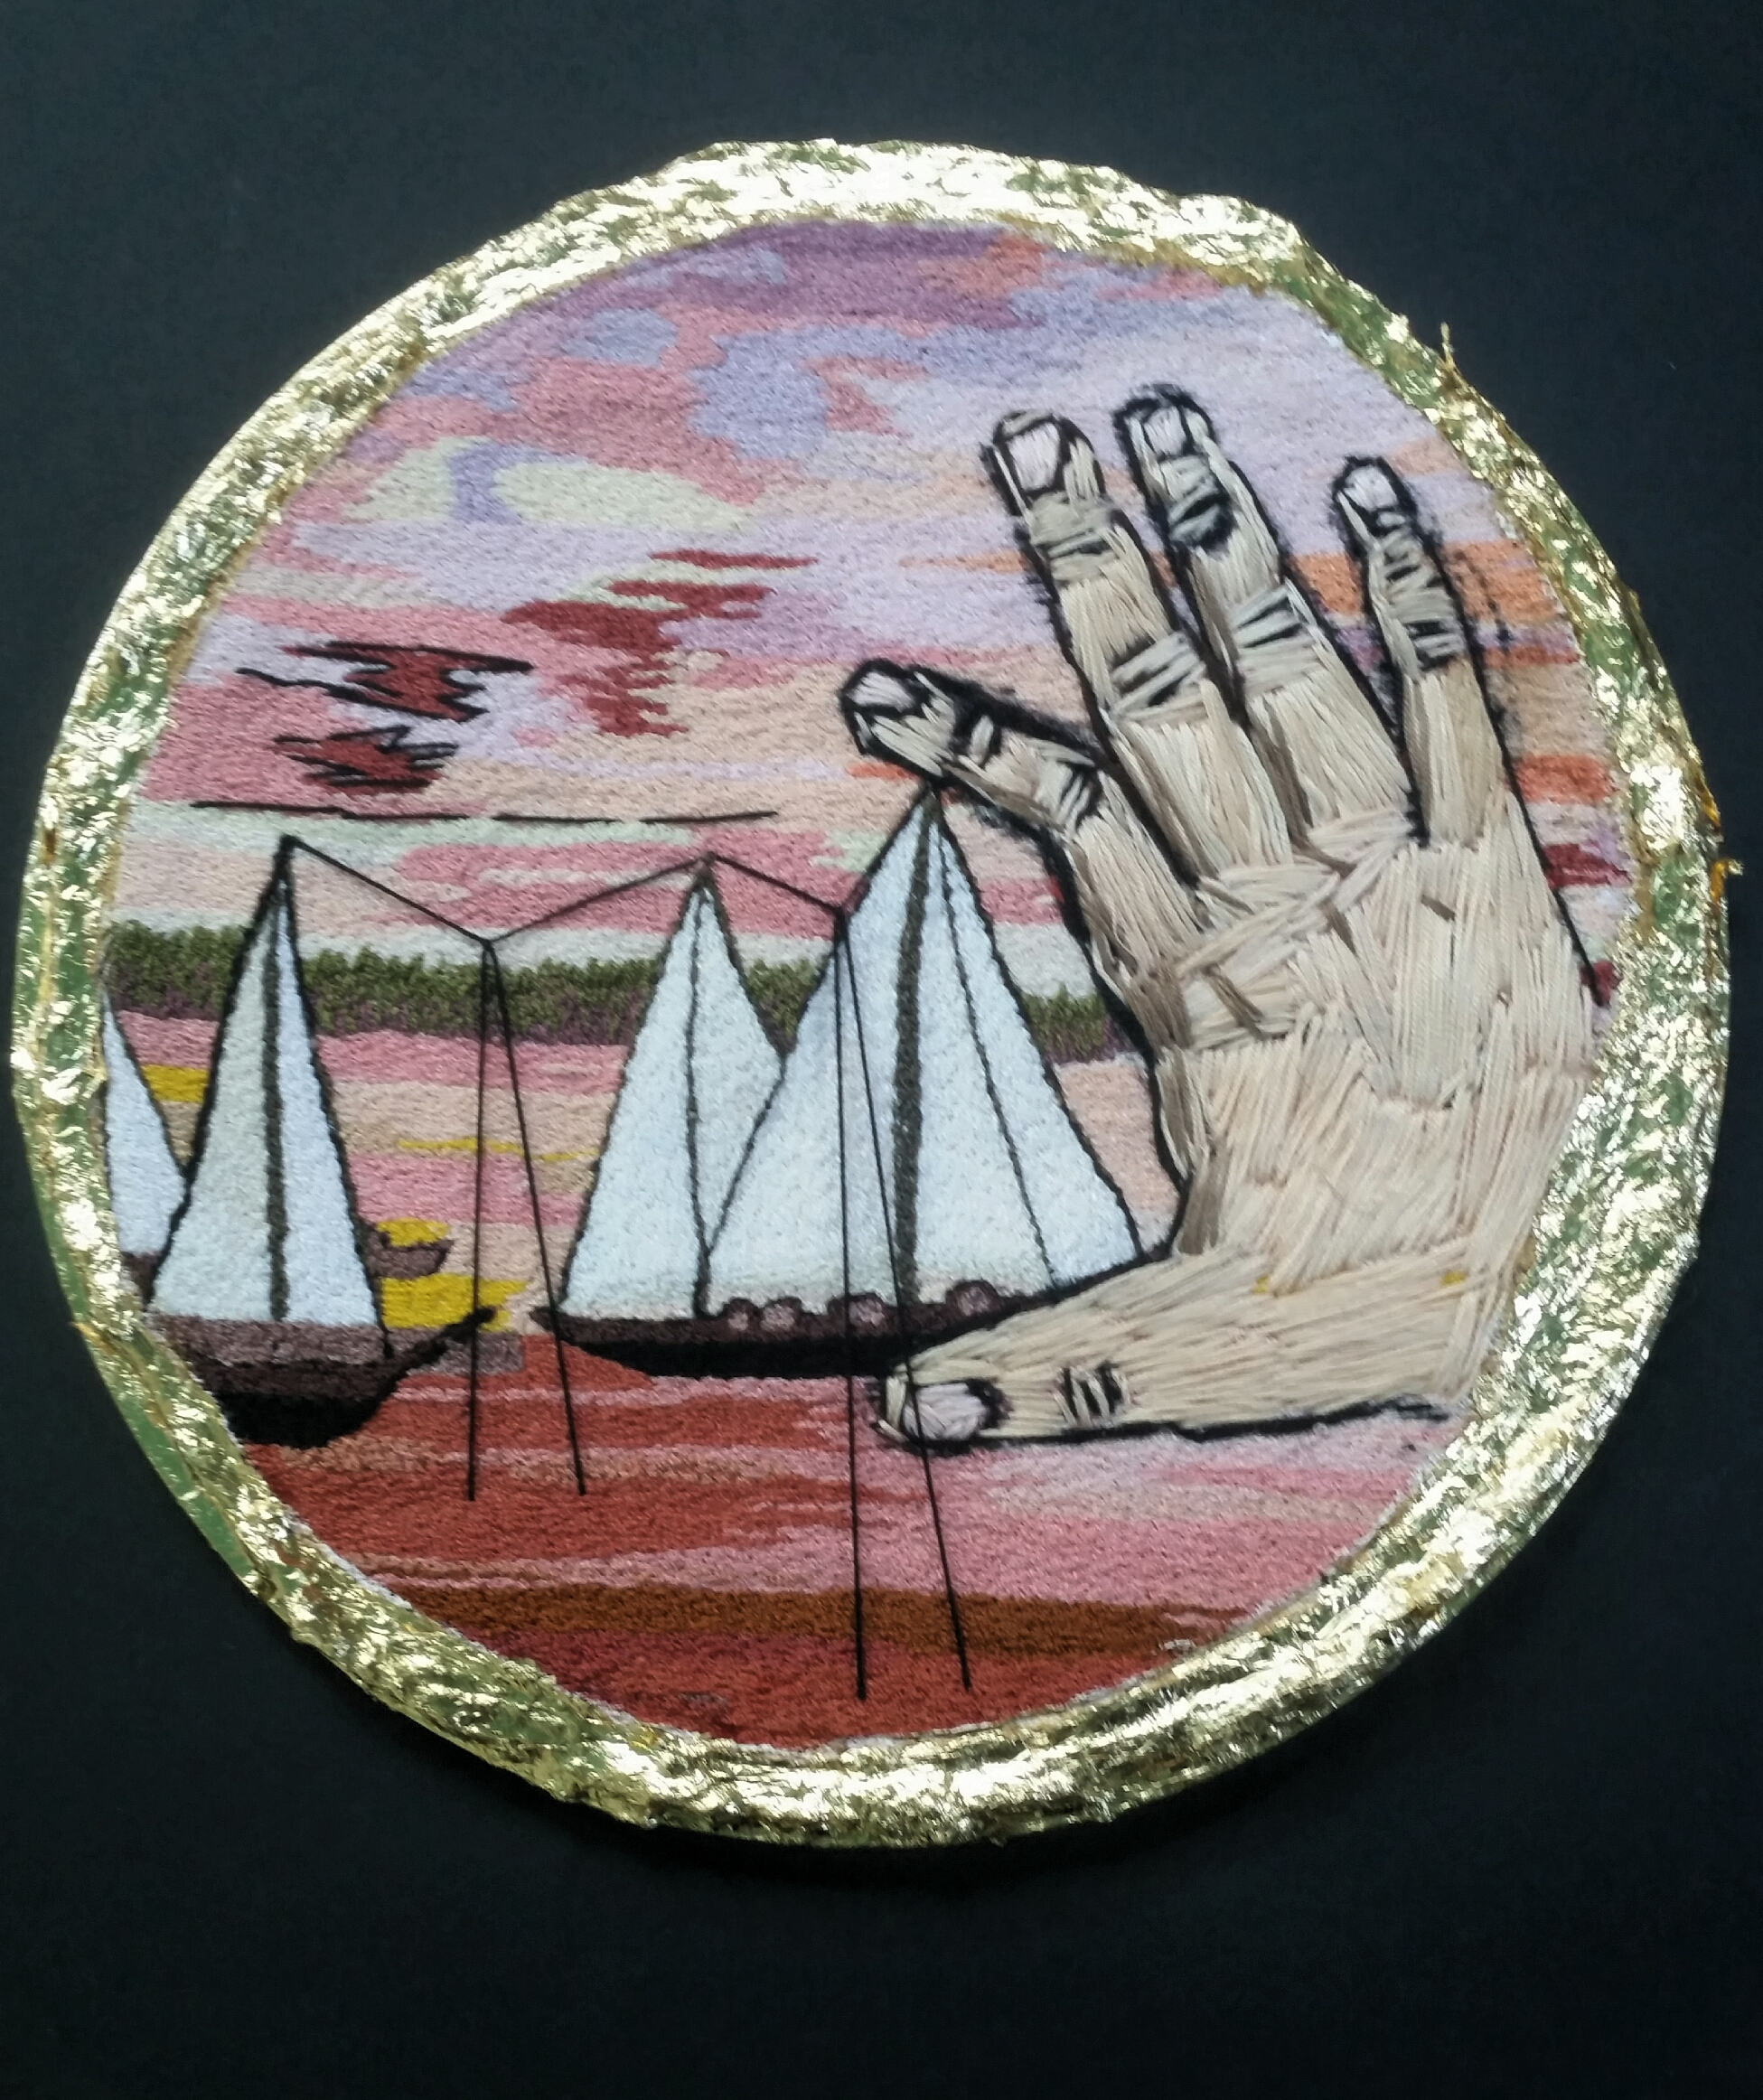 Embroidered image on found embroidery